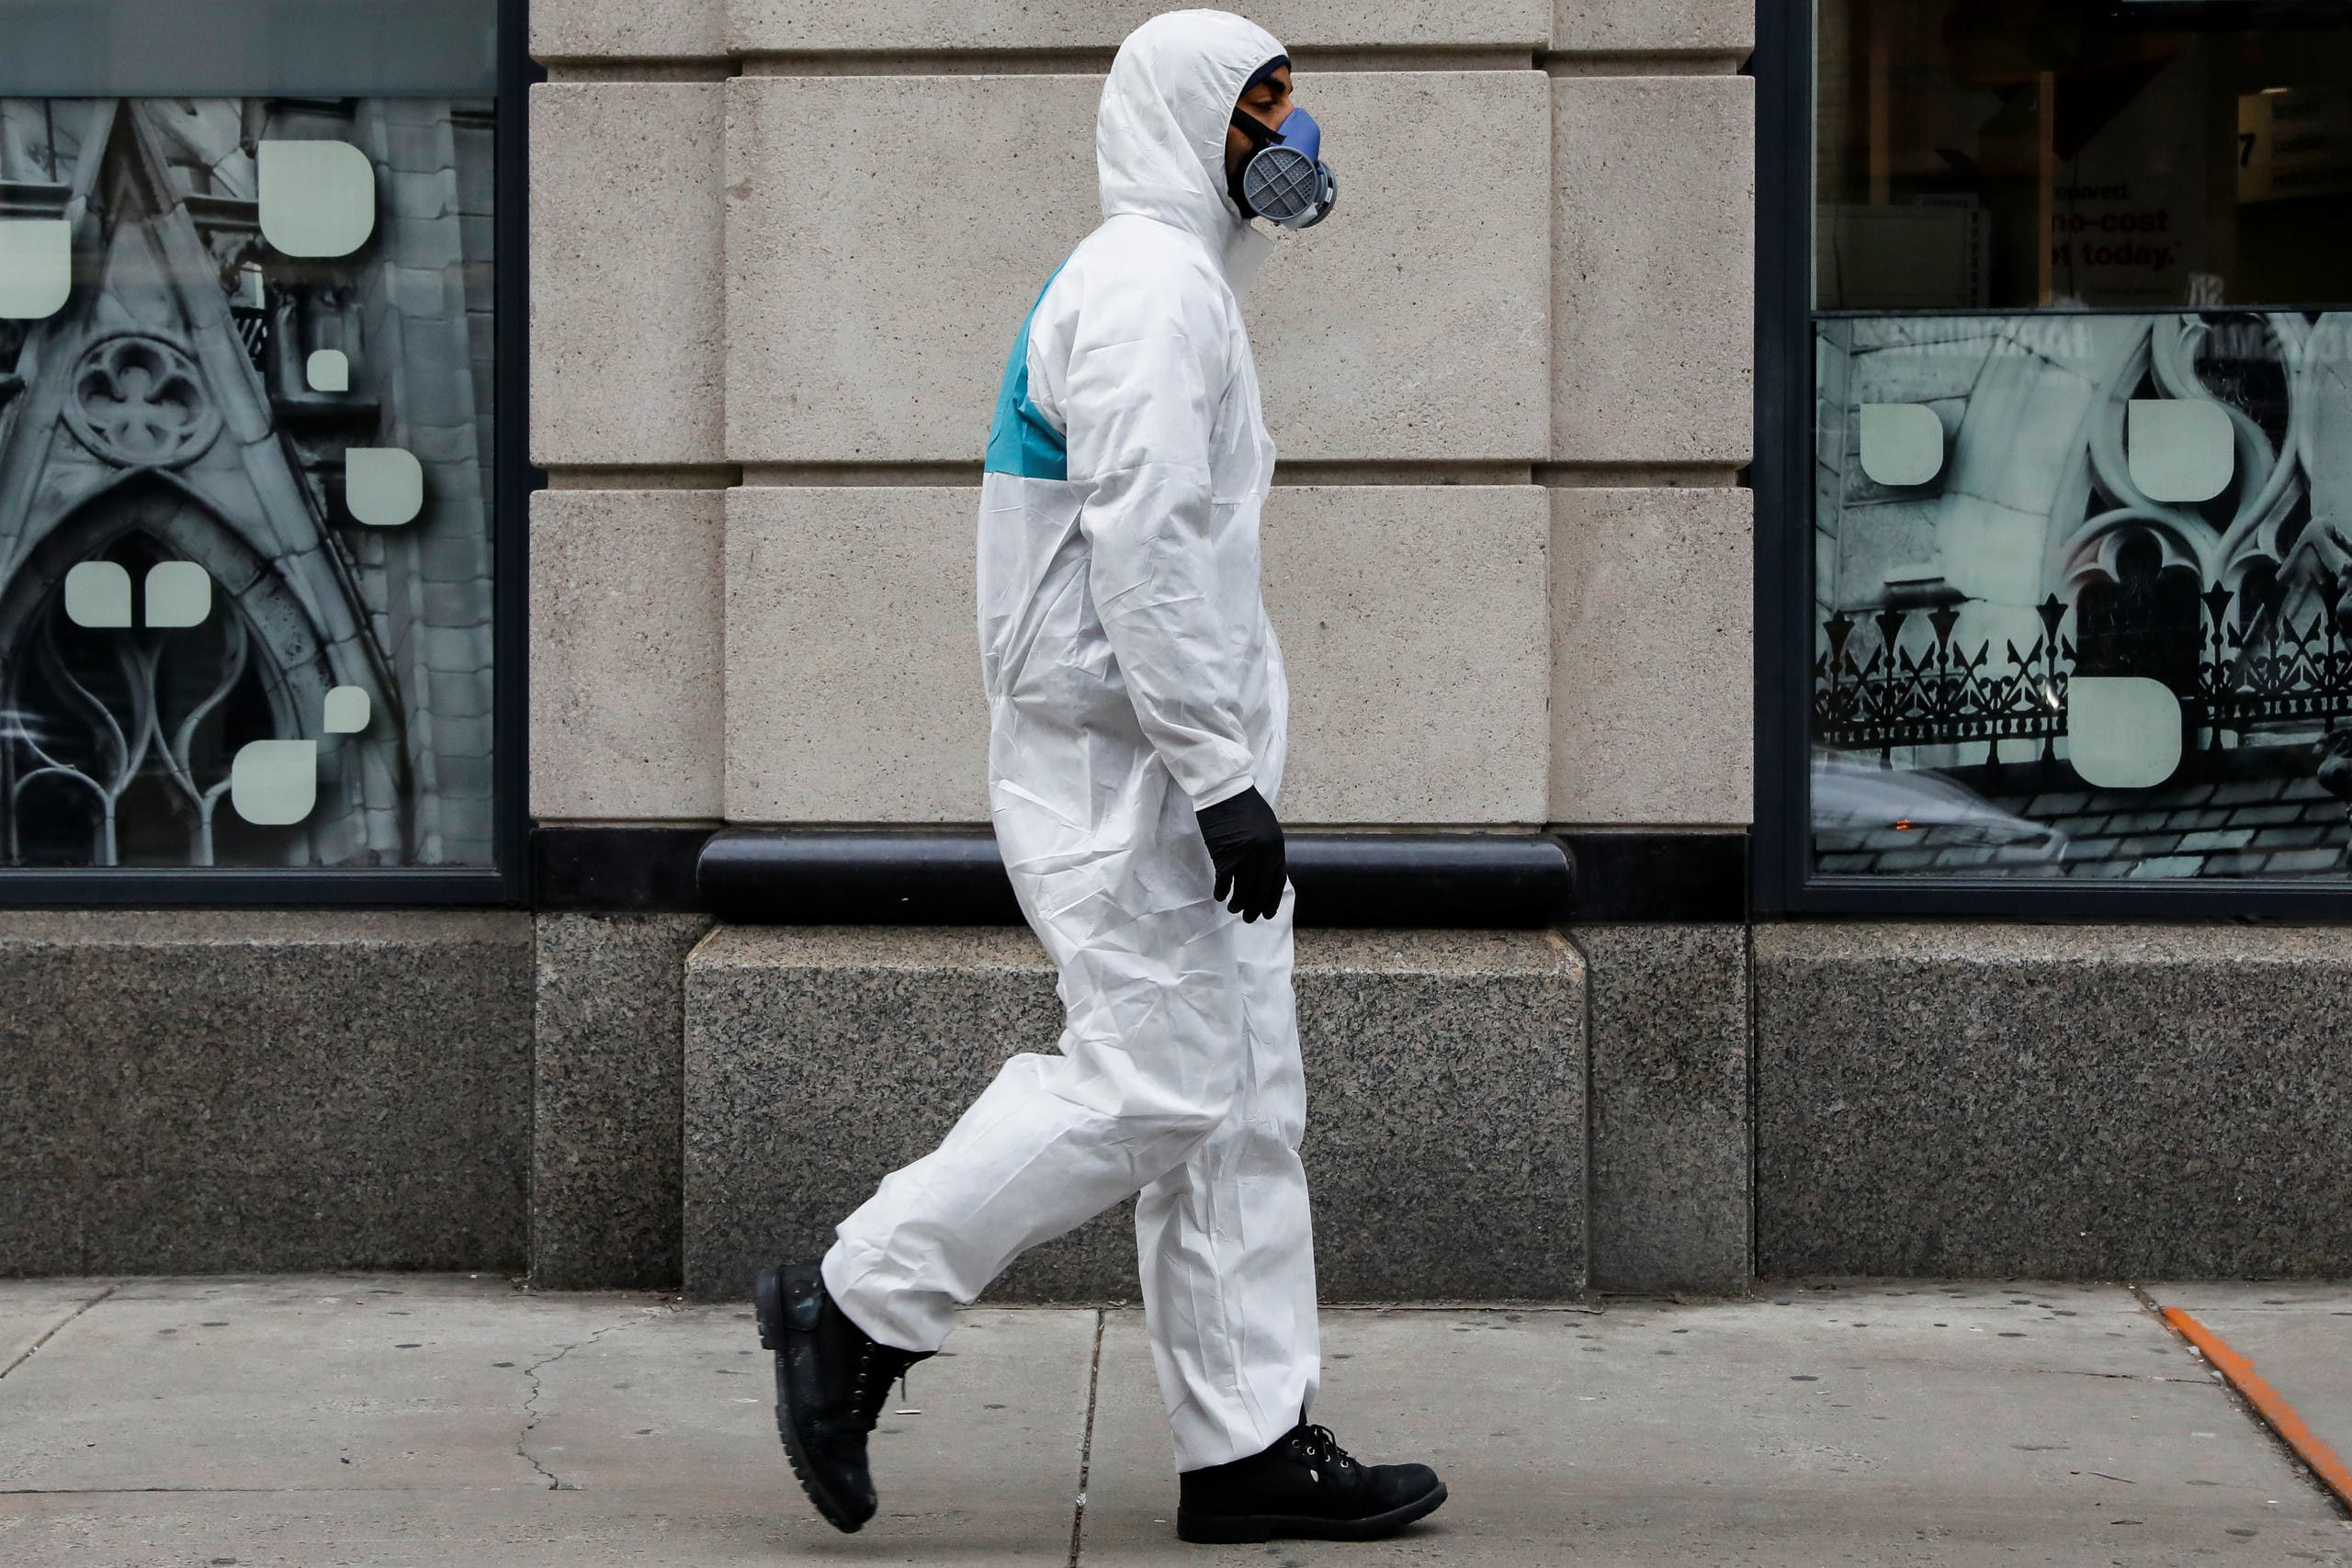 A man wears personal protective equipment (PPE) as he walks on First Avenue, during the coronavirus disease (COVID-19) outbreak, in New York City, U.S., March 31, 2020. (Reuters)